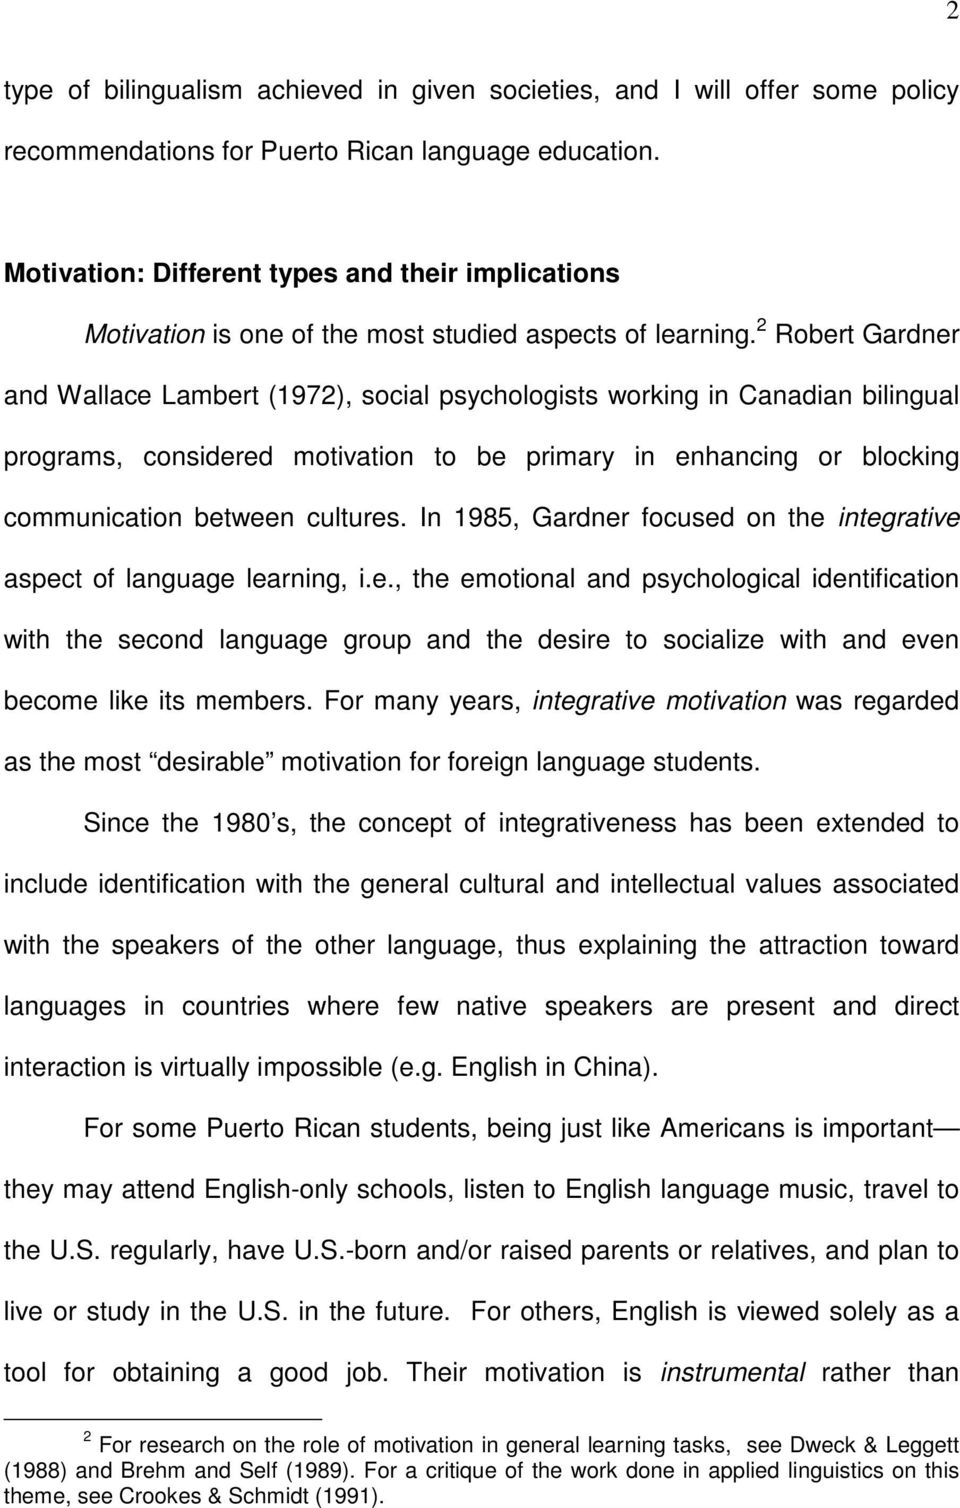 2 Robert Gardner and Wallace Lambert (1972), social psychologists working in Canadian bilingual programs, considered motivation to be primary in enhancing or blocking communication between cultures.